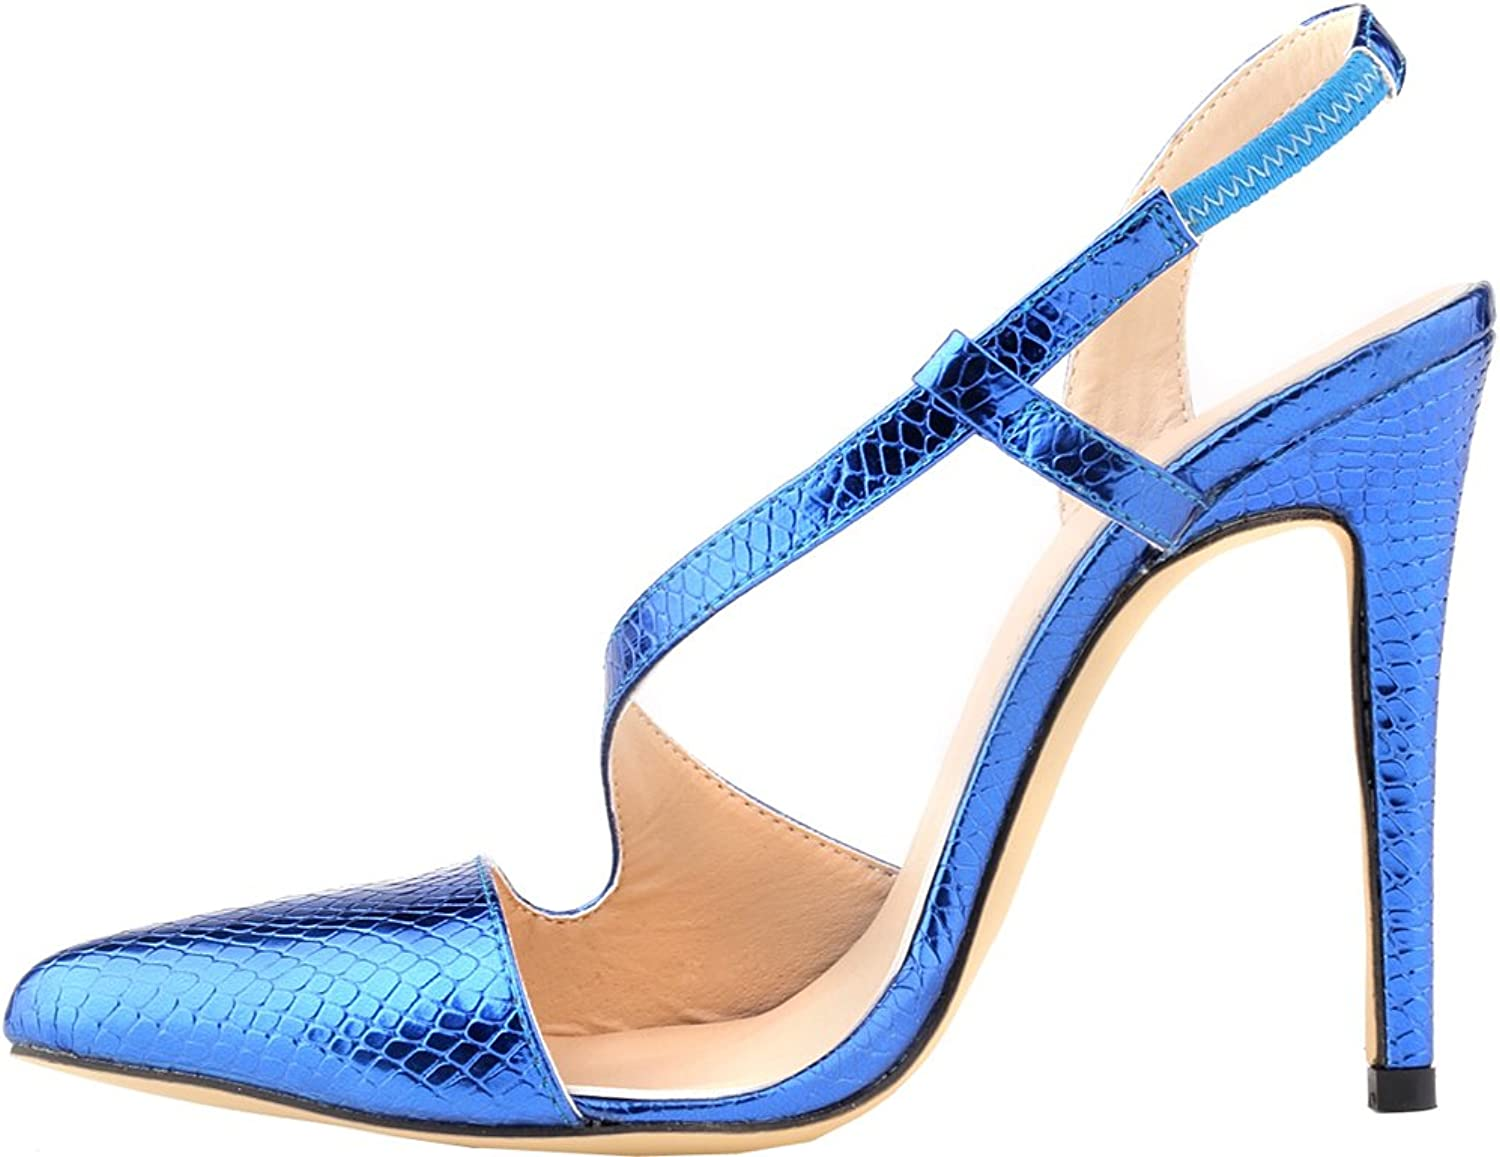 Vimedea Womens Highed Pointed Toe Classic Trend Crafted Office Business Pumps 302-1